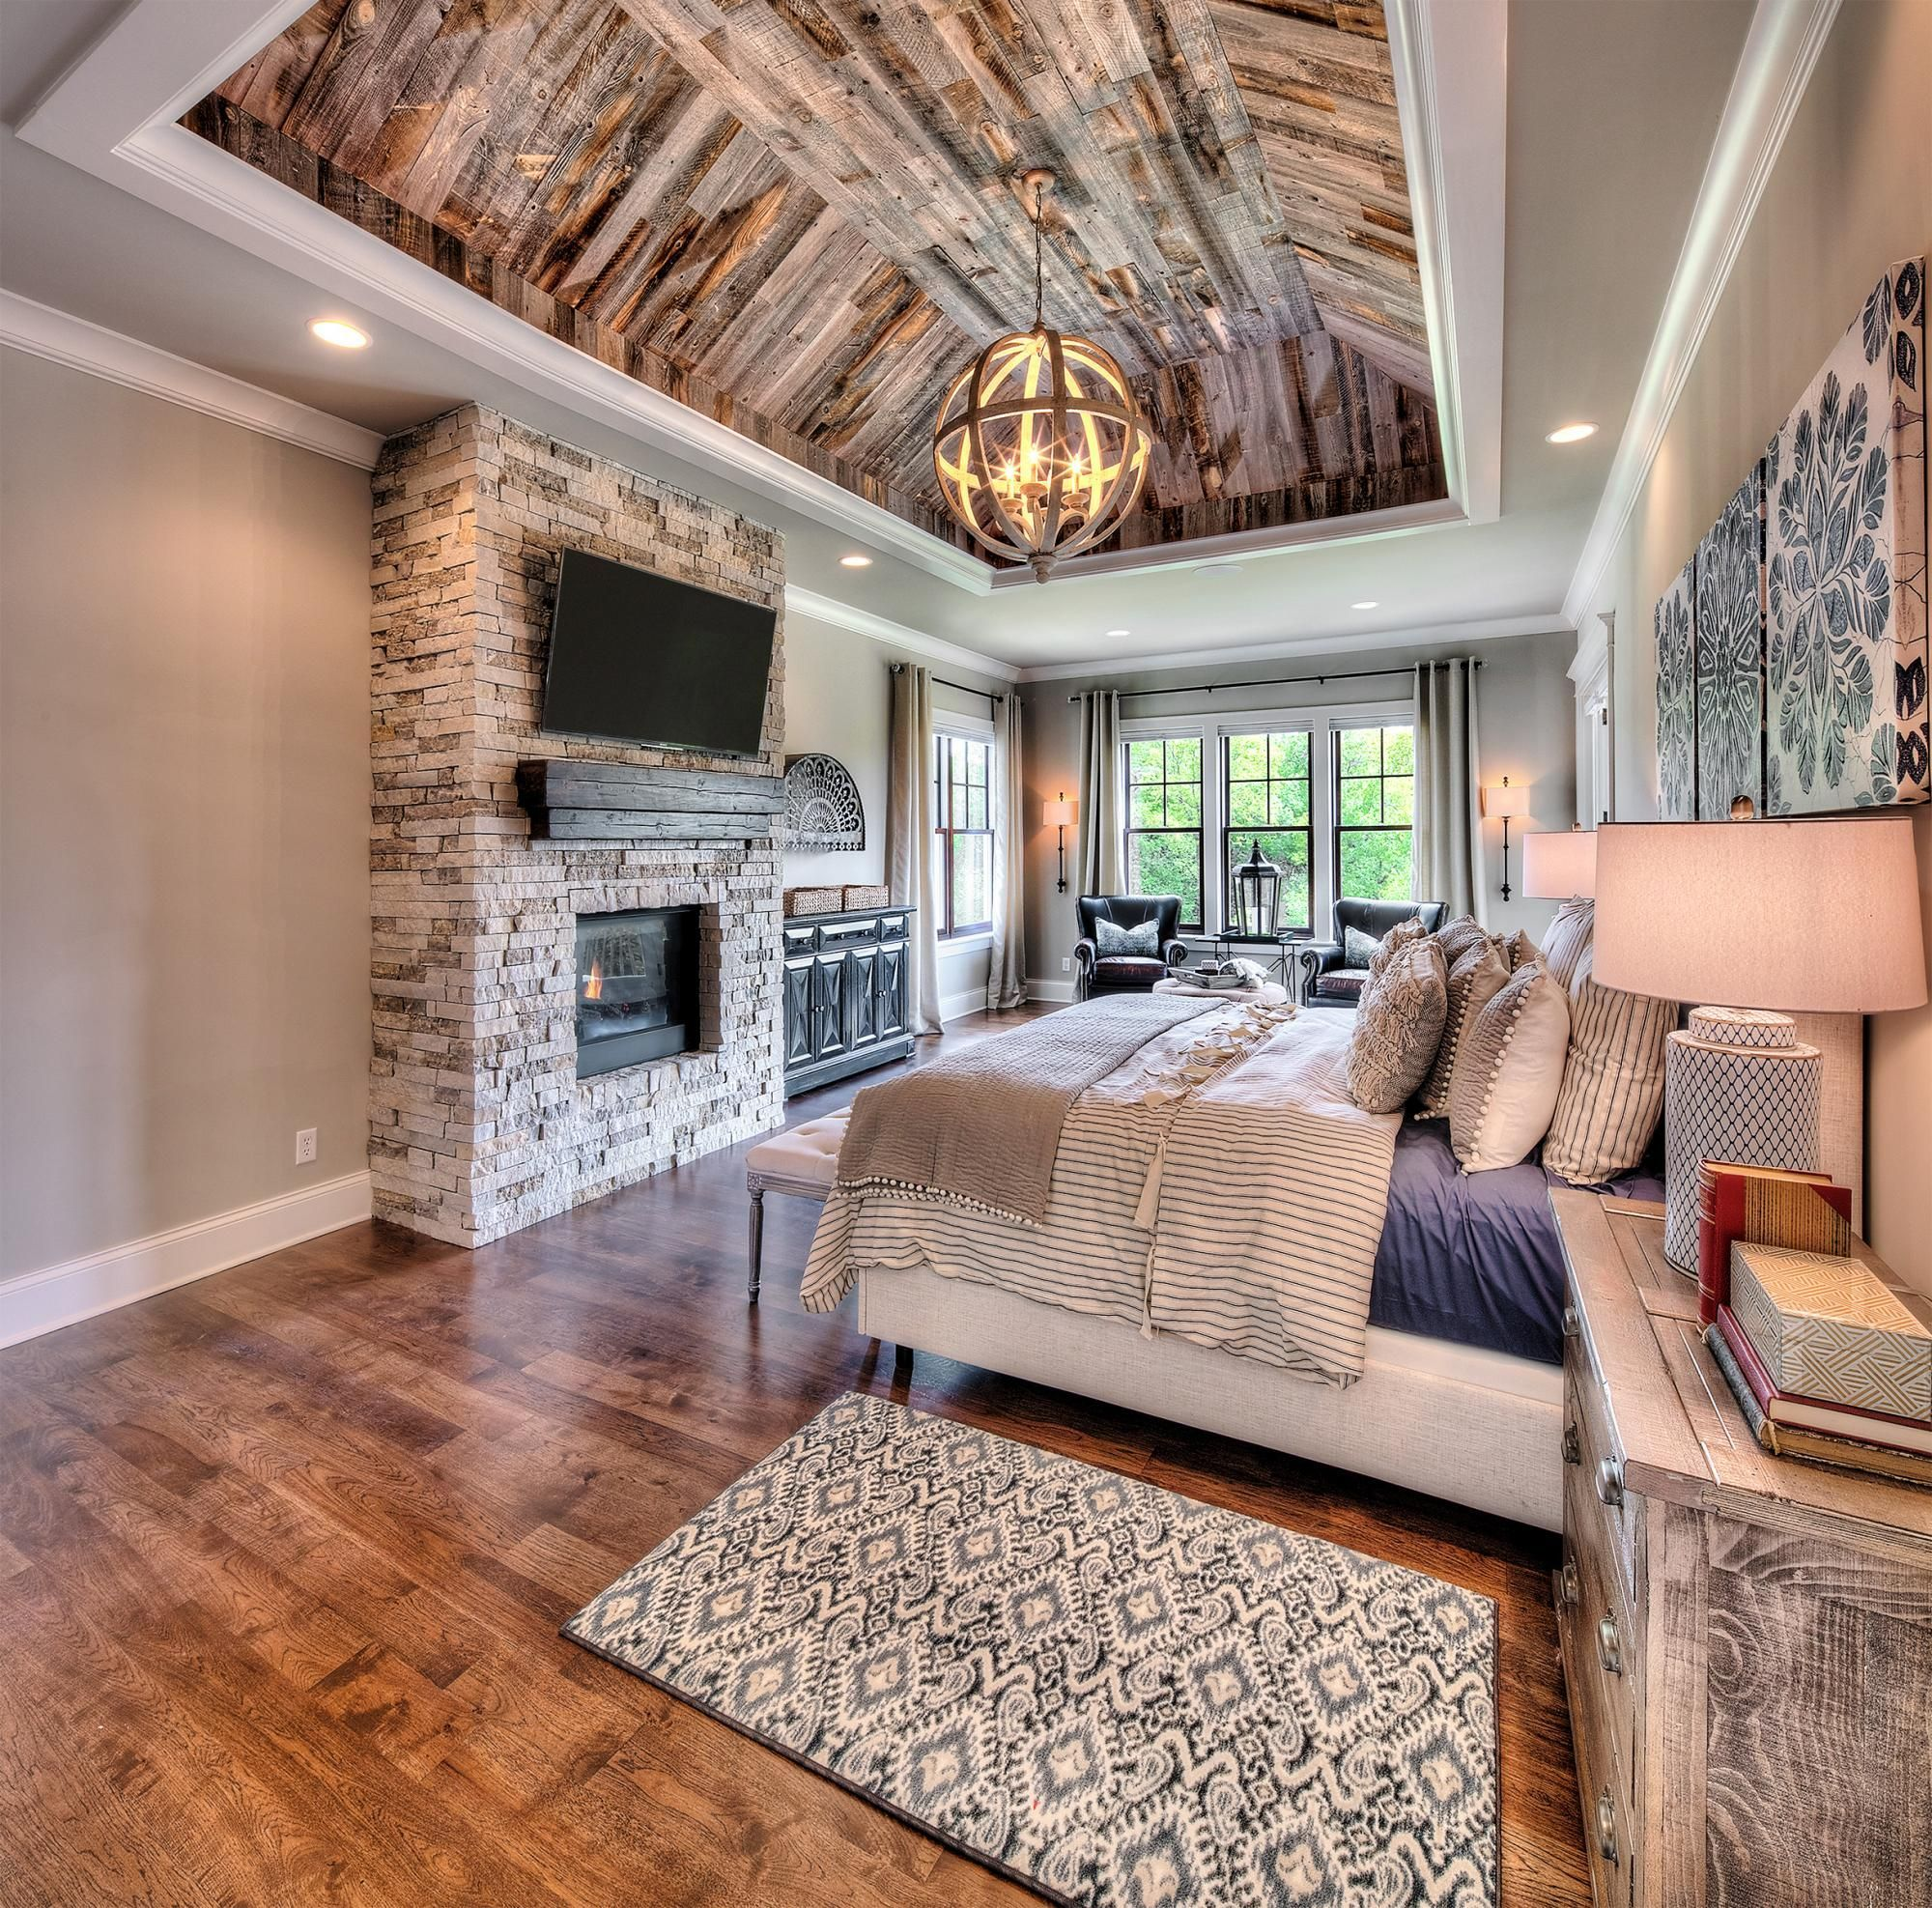 15+ Refreshing Master Bedroom Design Ideas for Renovation or Building – MAB